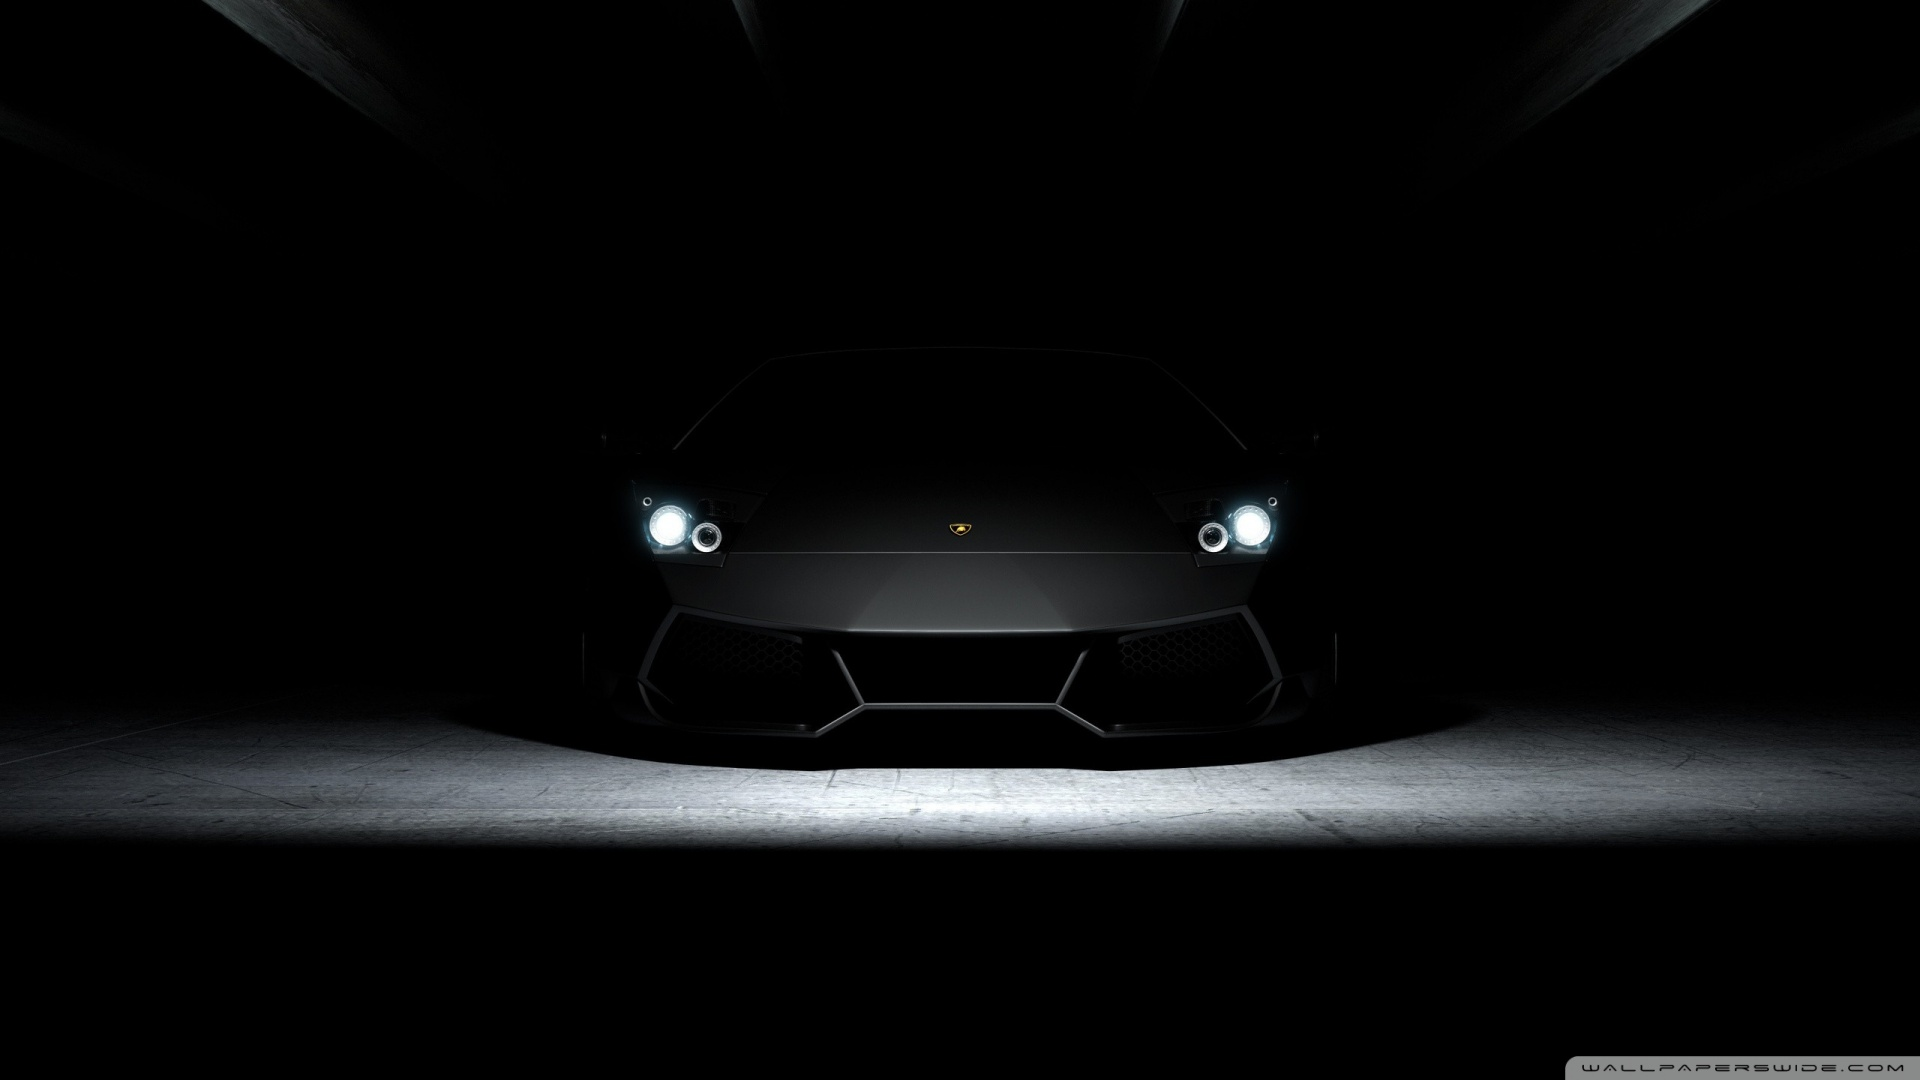 Lamborghini Dark HD desktop wallpaper High Definition 1920x1080